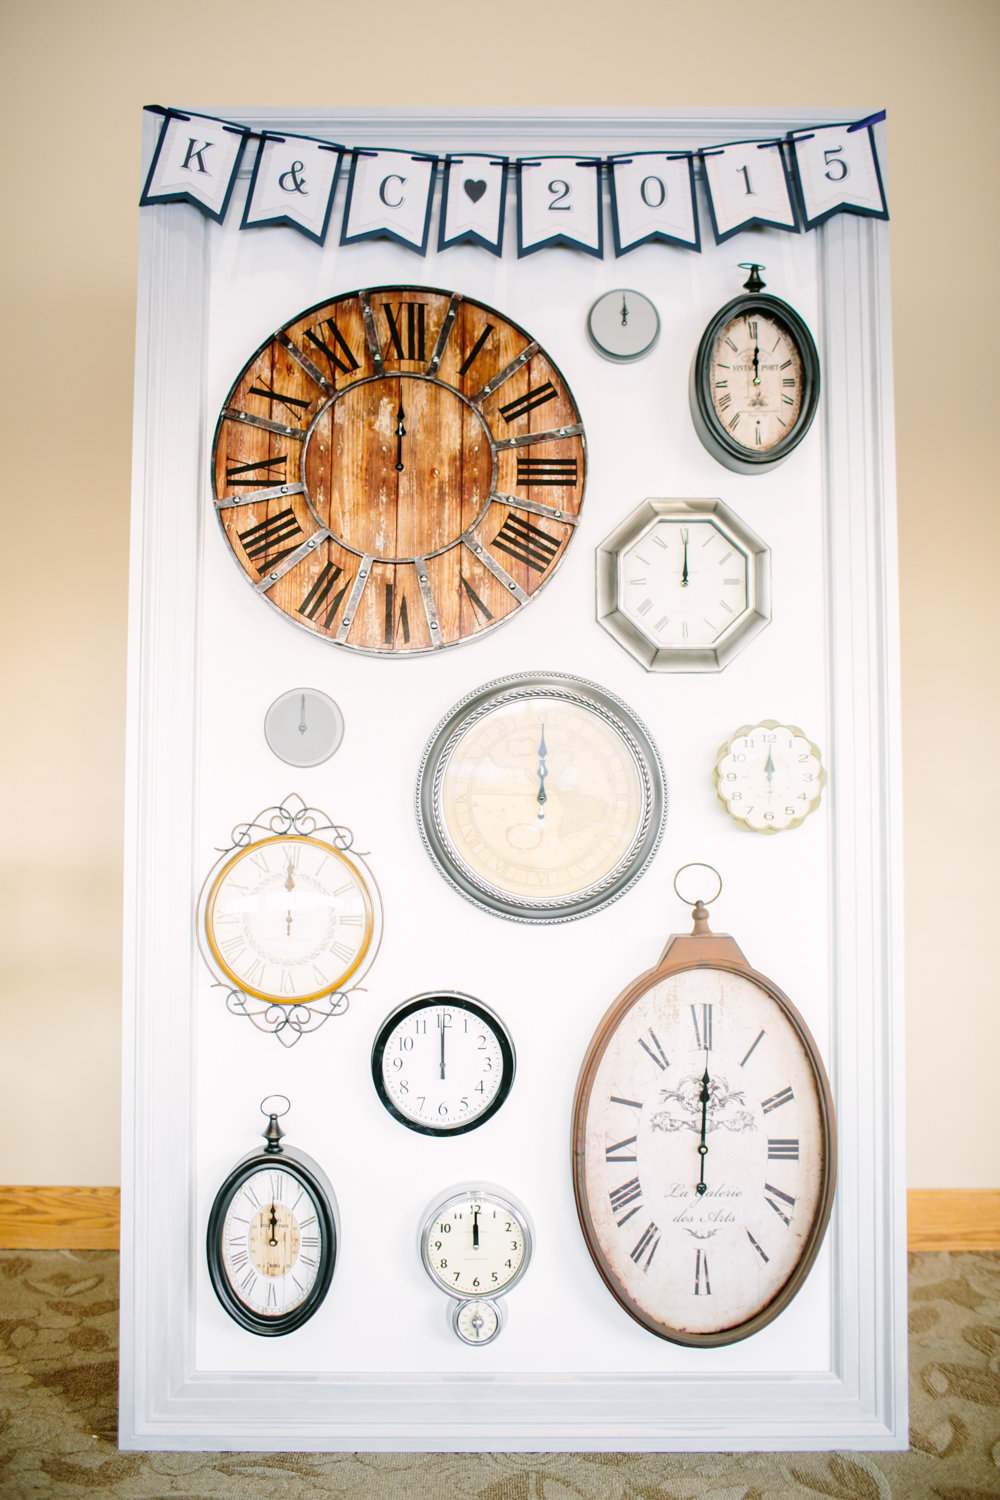 For a quirky take on the classic New Year's Eve countdown, decorate your reception venue withmismatched clocks.